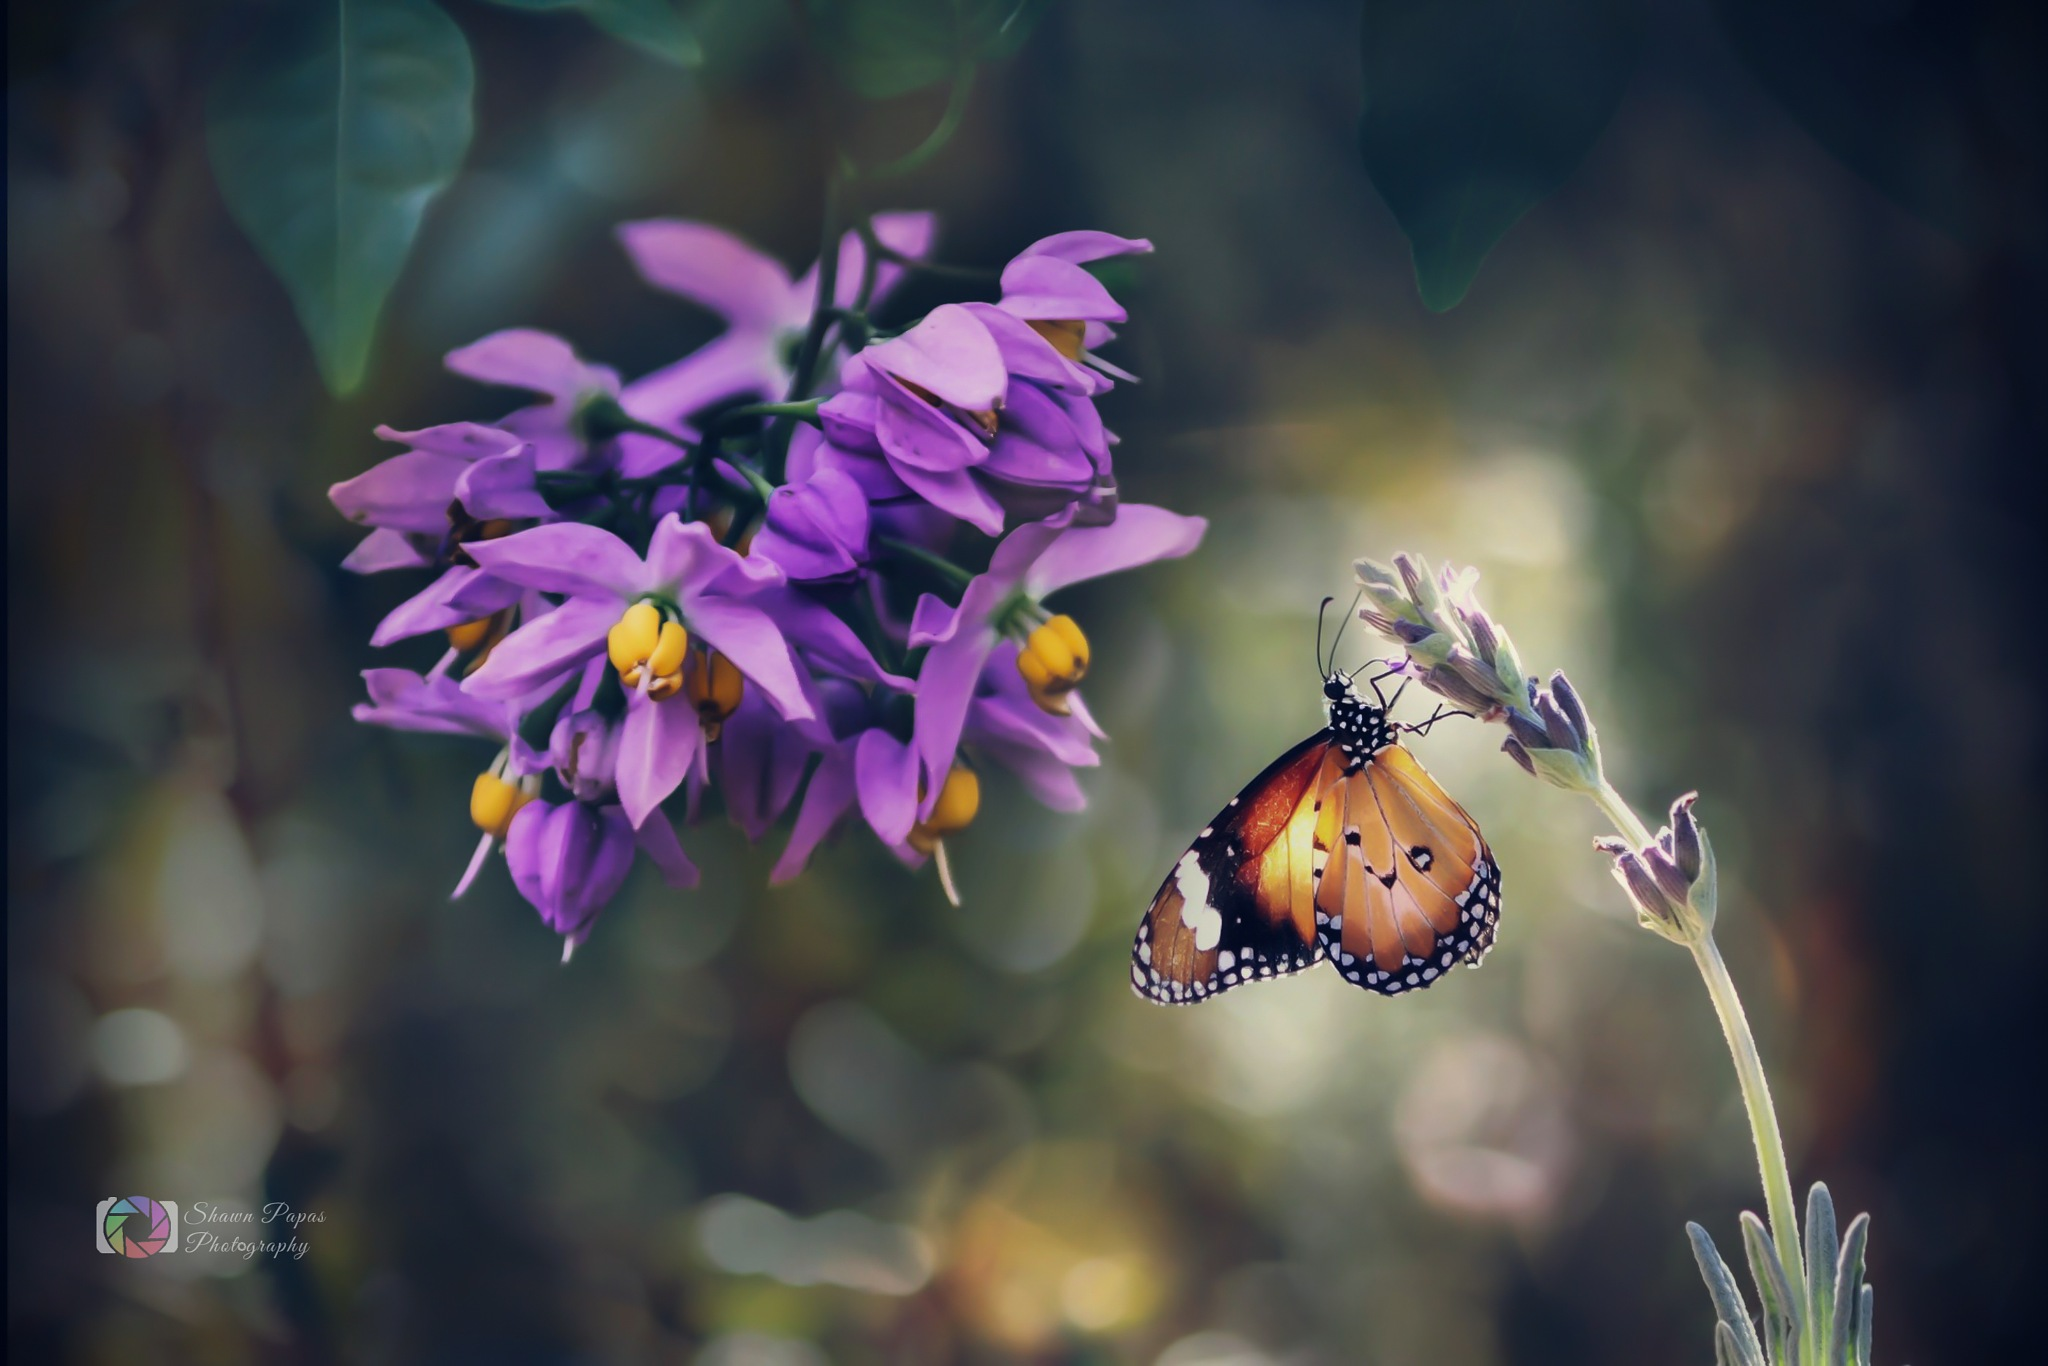 flower and butterfly by Shawn Papas